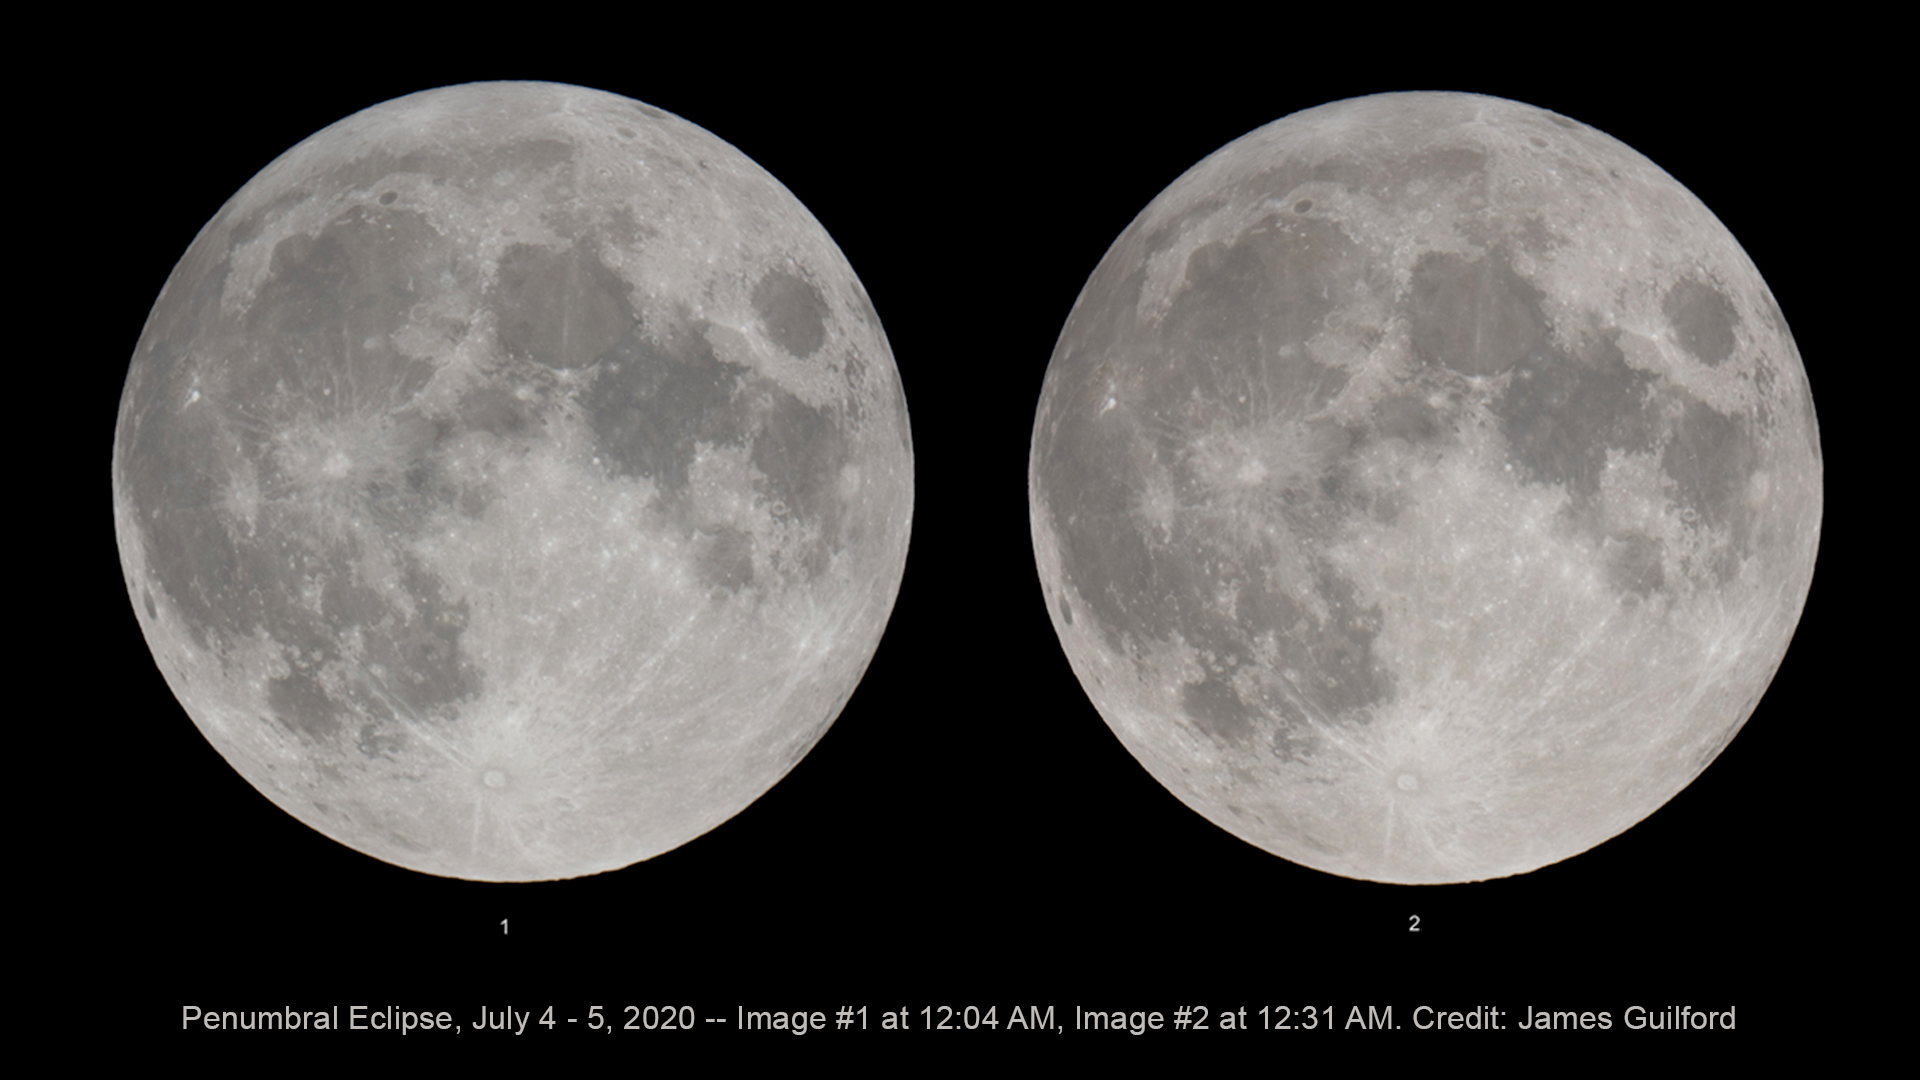 Little difference can be seen between an earlier stage and the maximum eclipse state of the July 4 - 5, 2020 penumbral lunar eclipse. Photos by James Guilford.